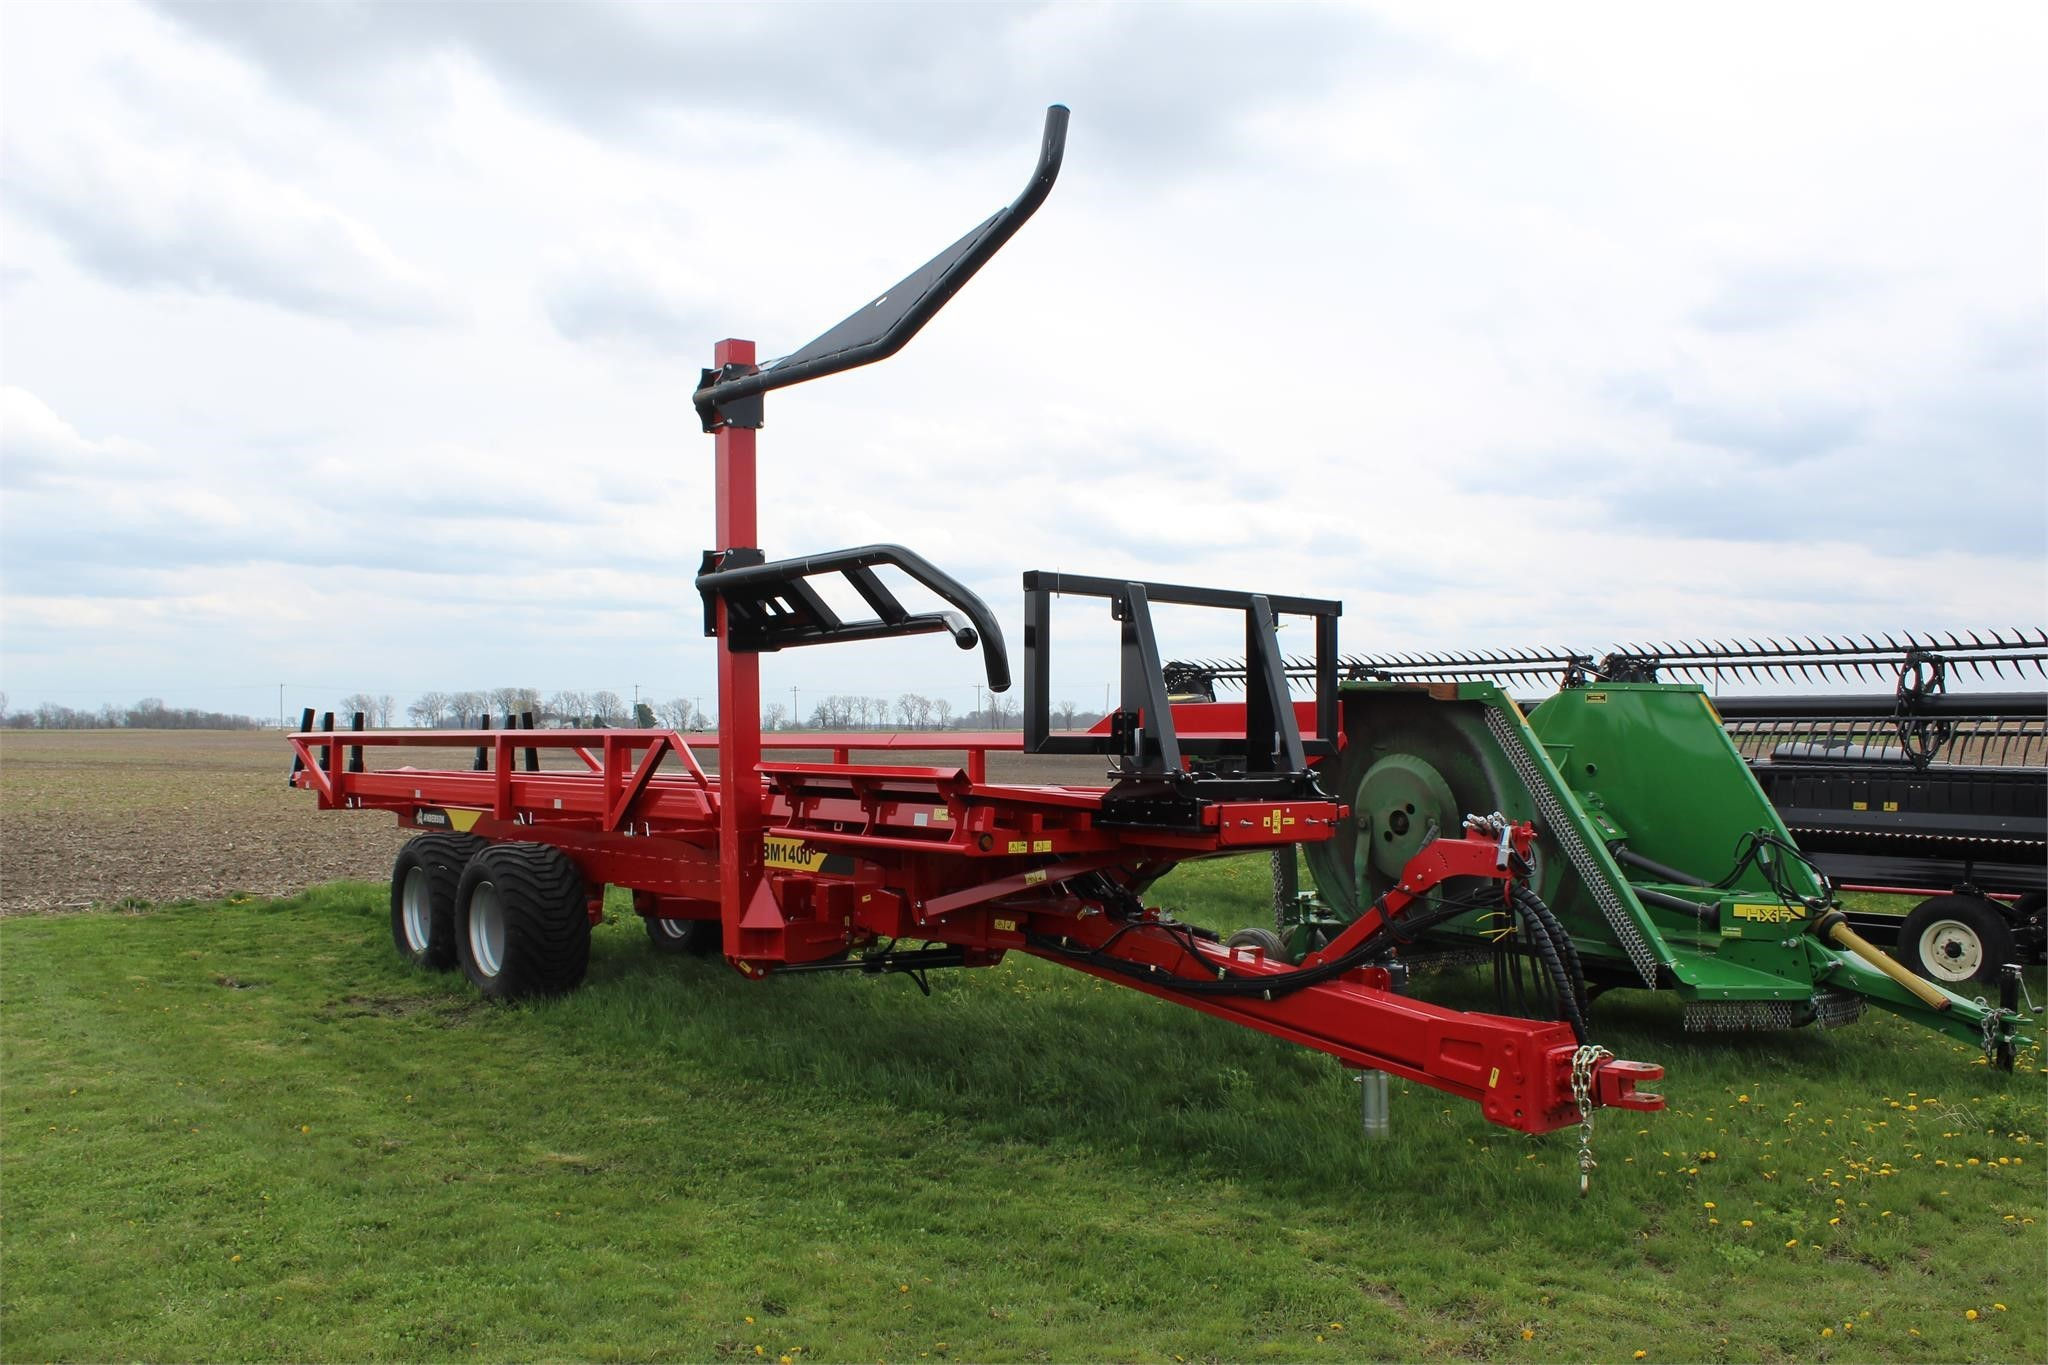 Anderson RBM1400 Hay Stacking Equipment